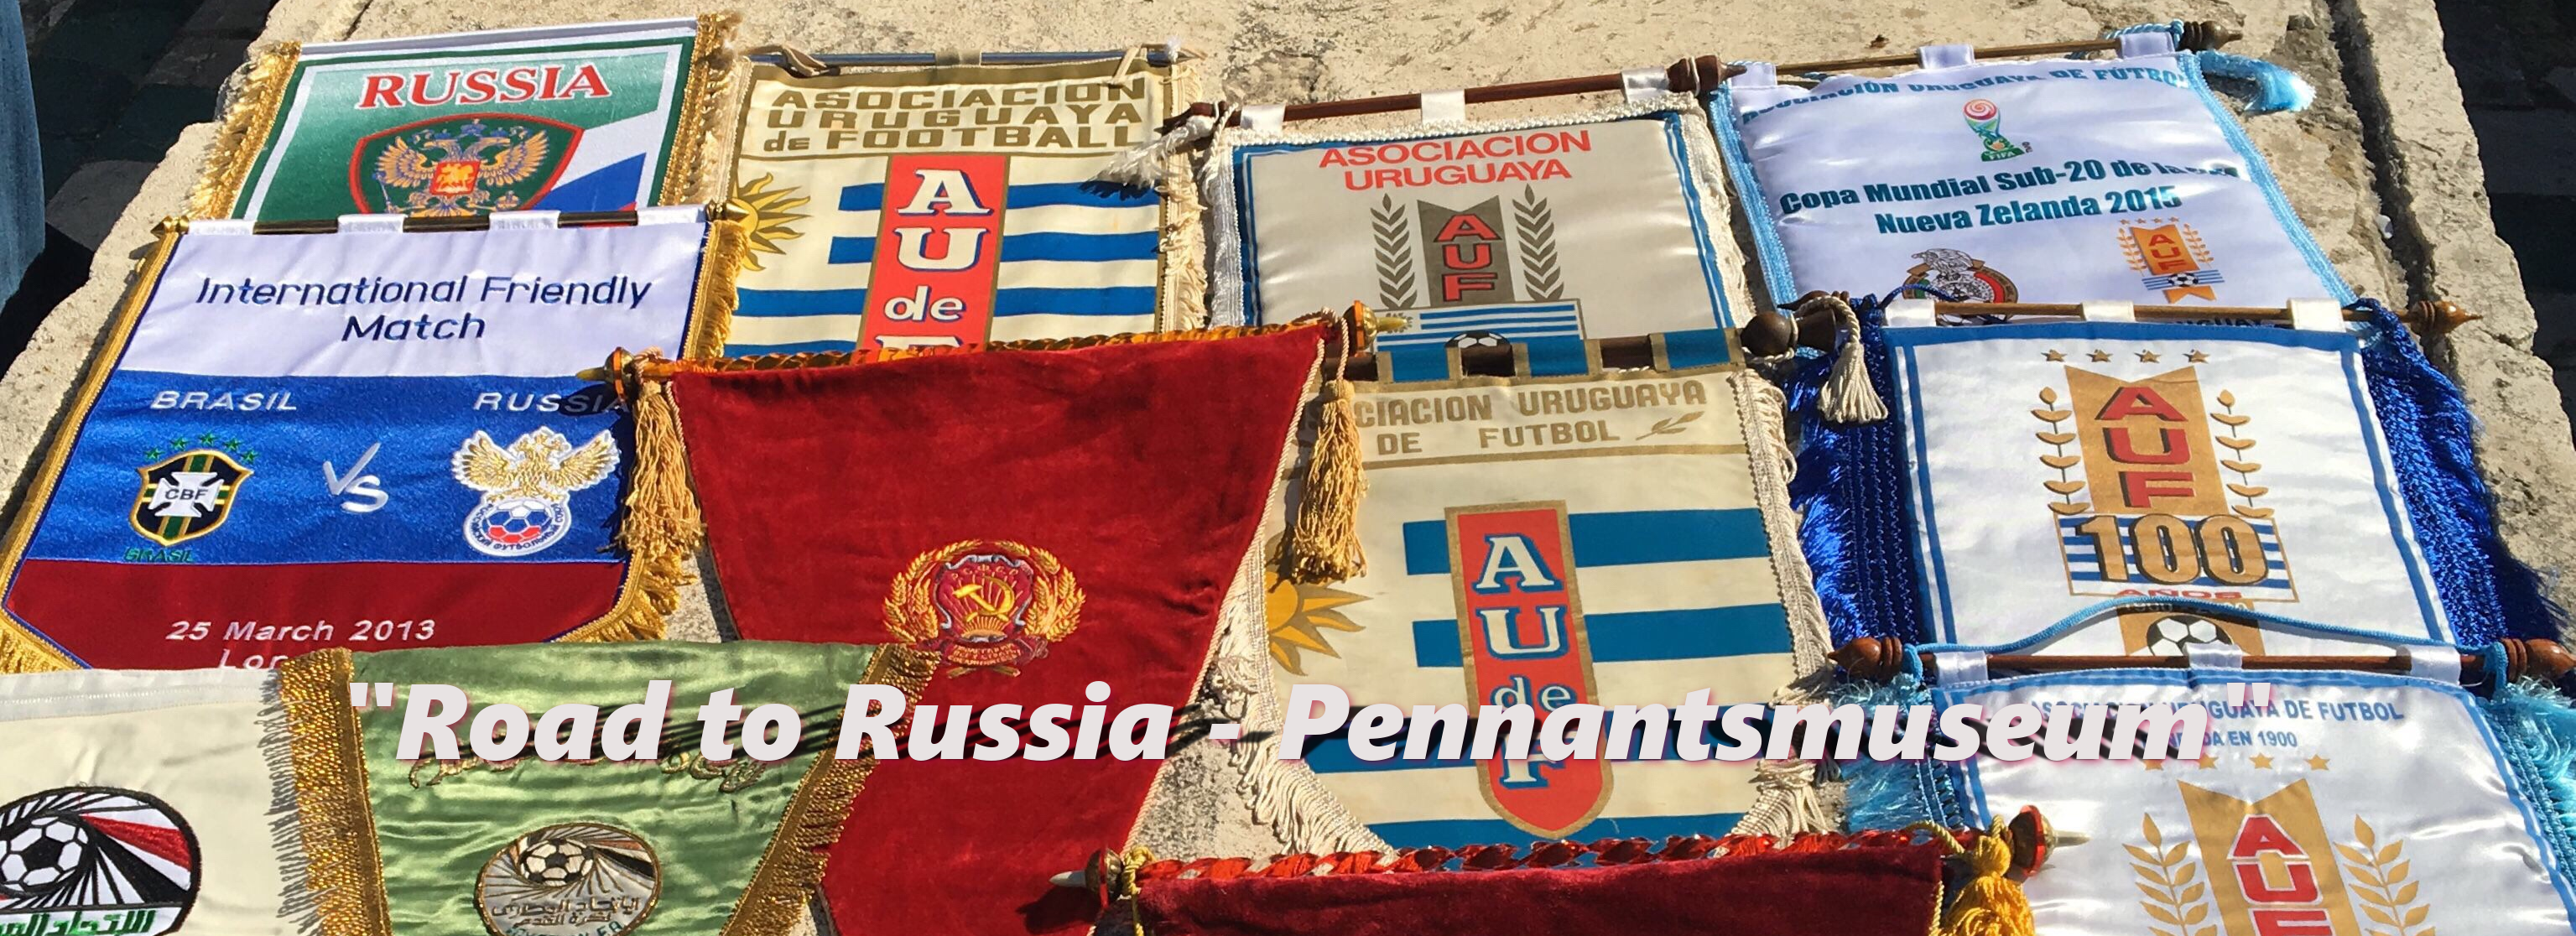 Road to Russia - Pennantsmuseum